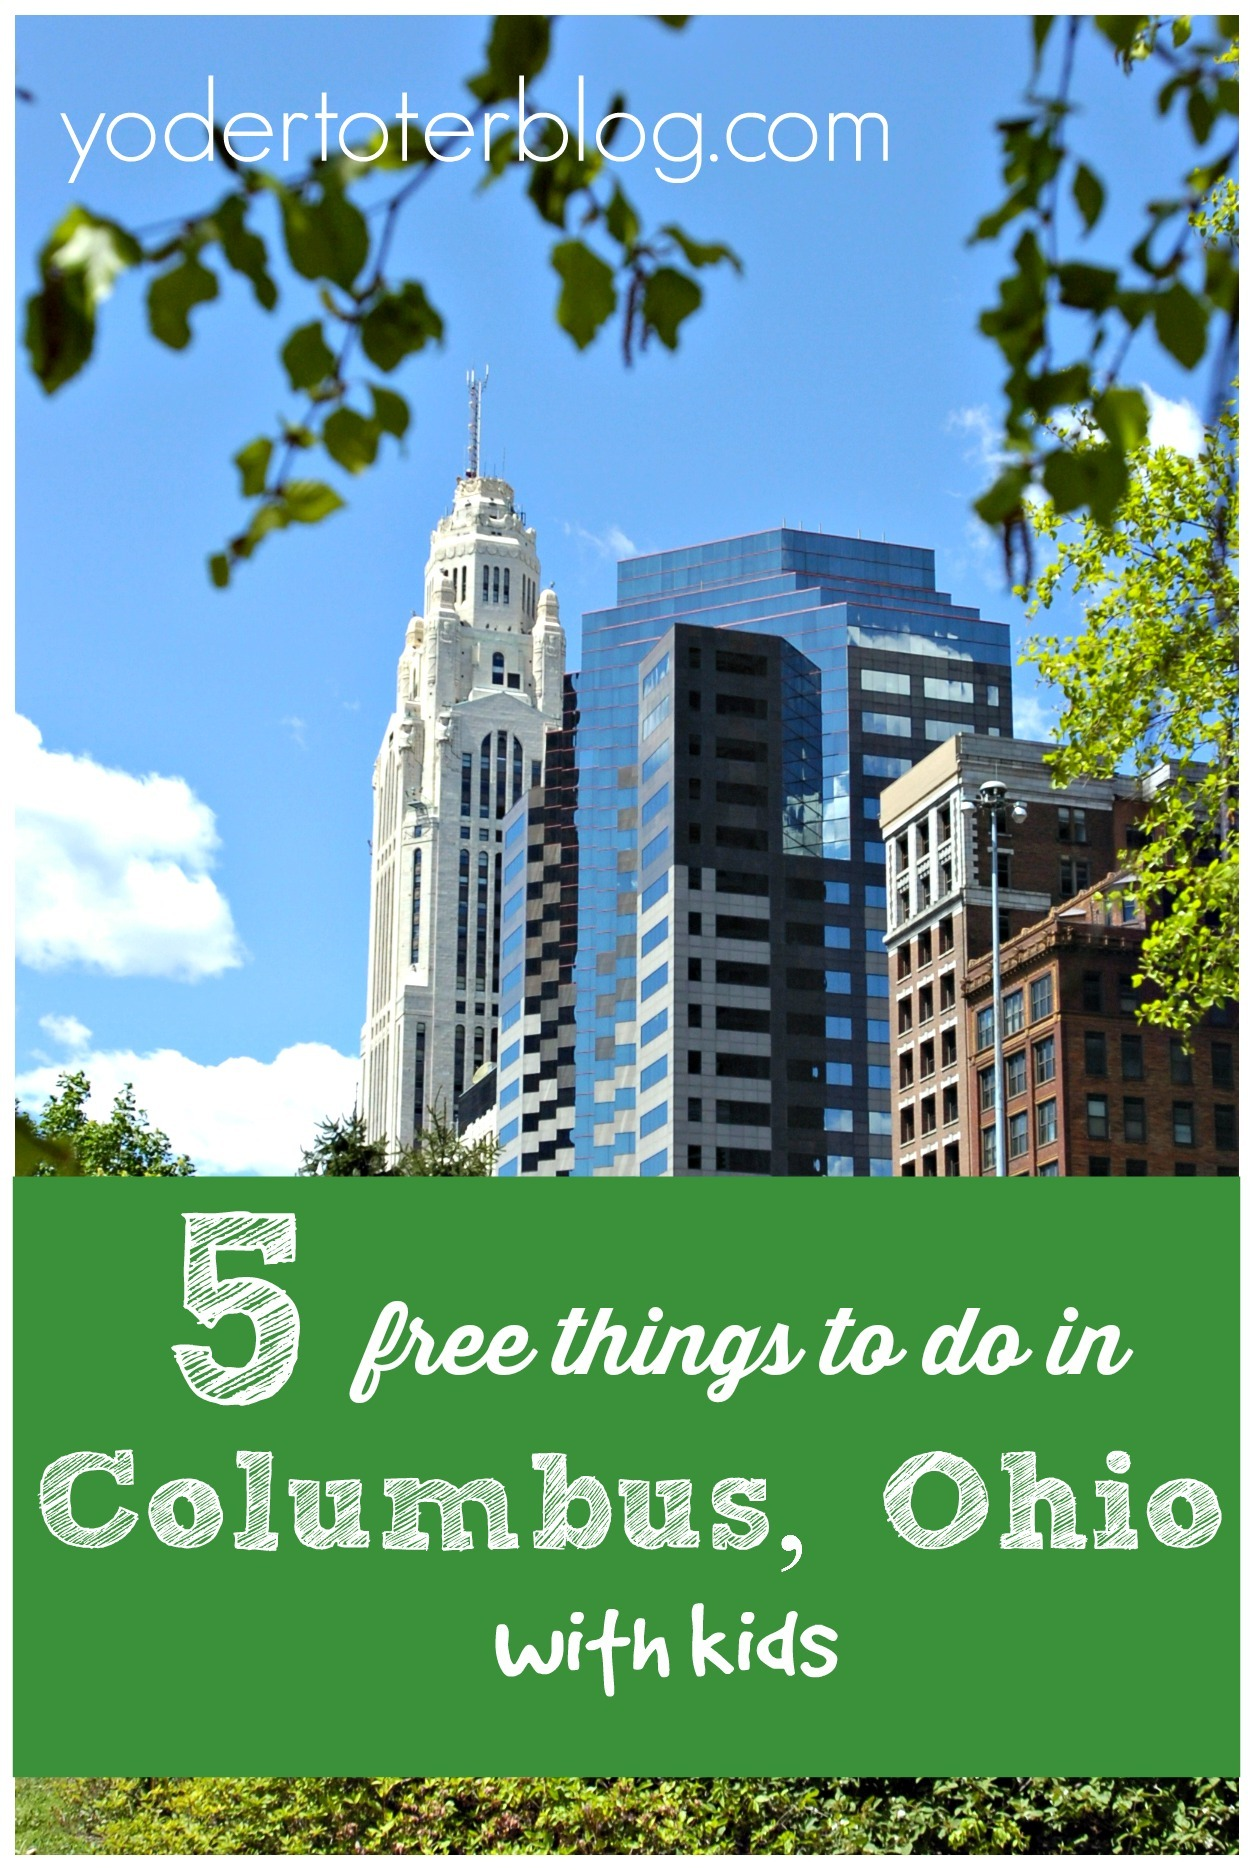 5 Free things to do in Columbus, Ohio with kids